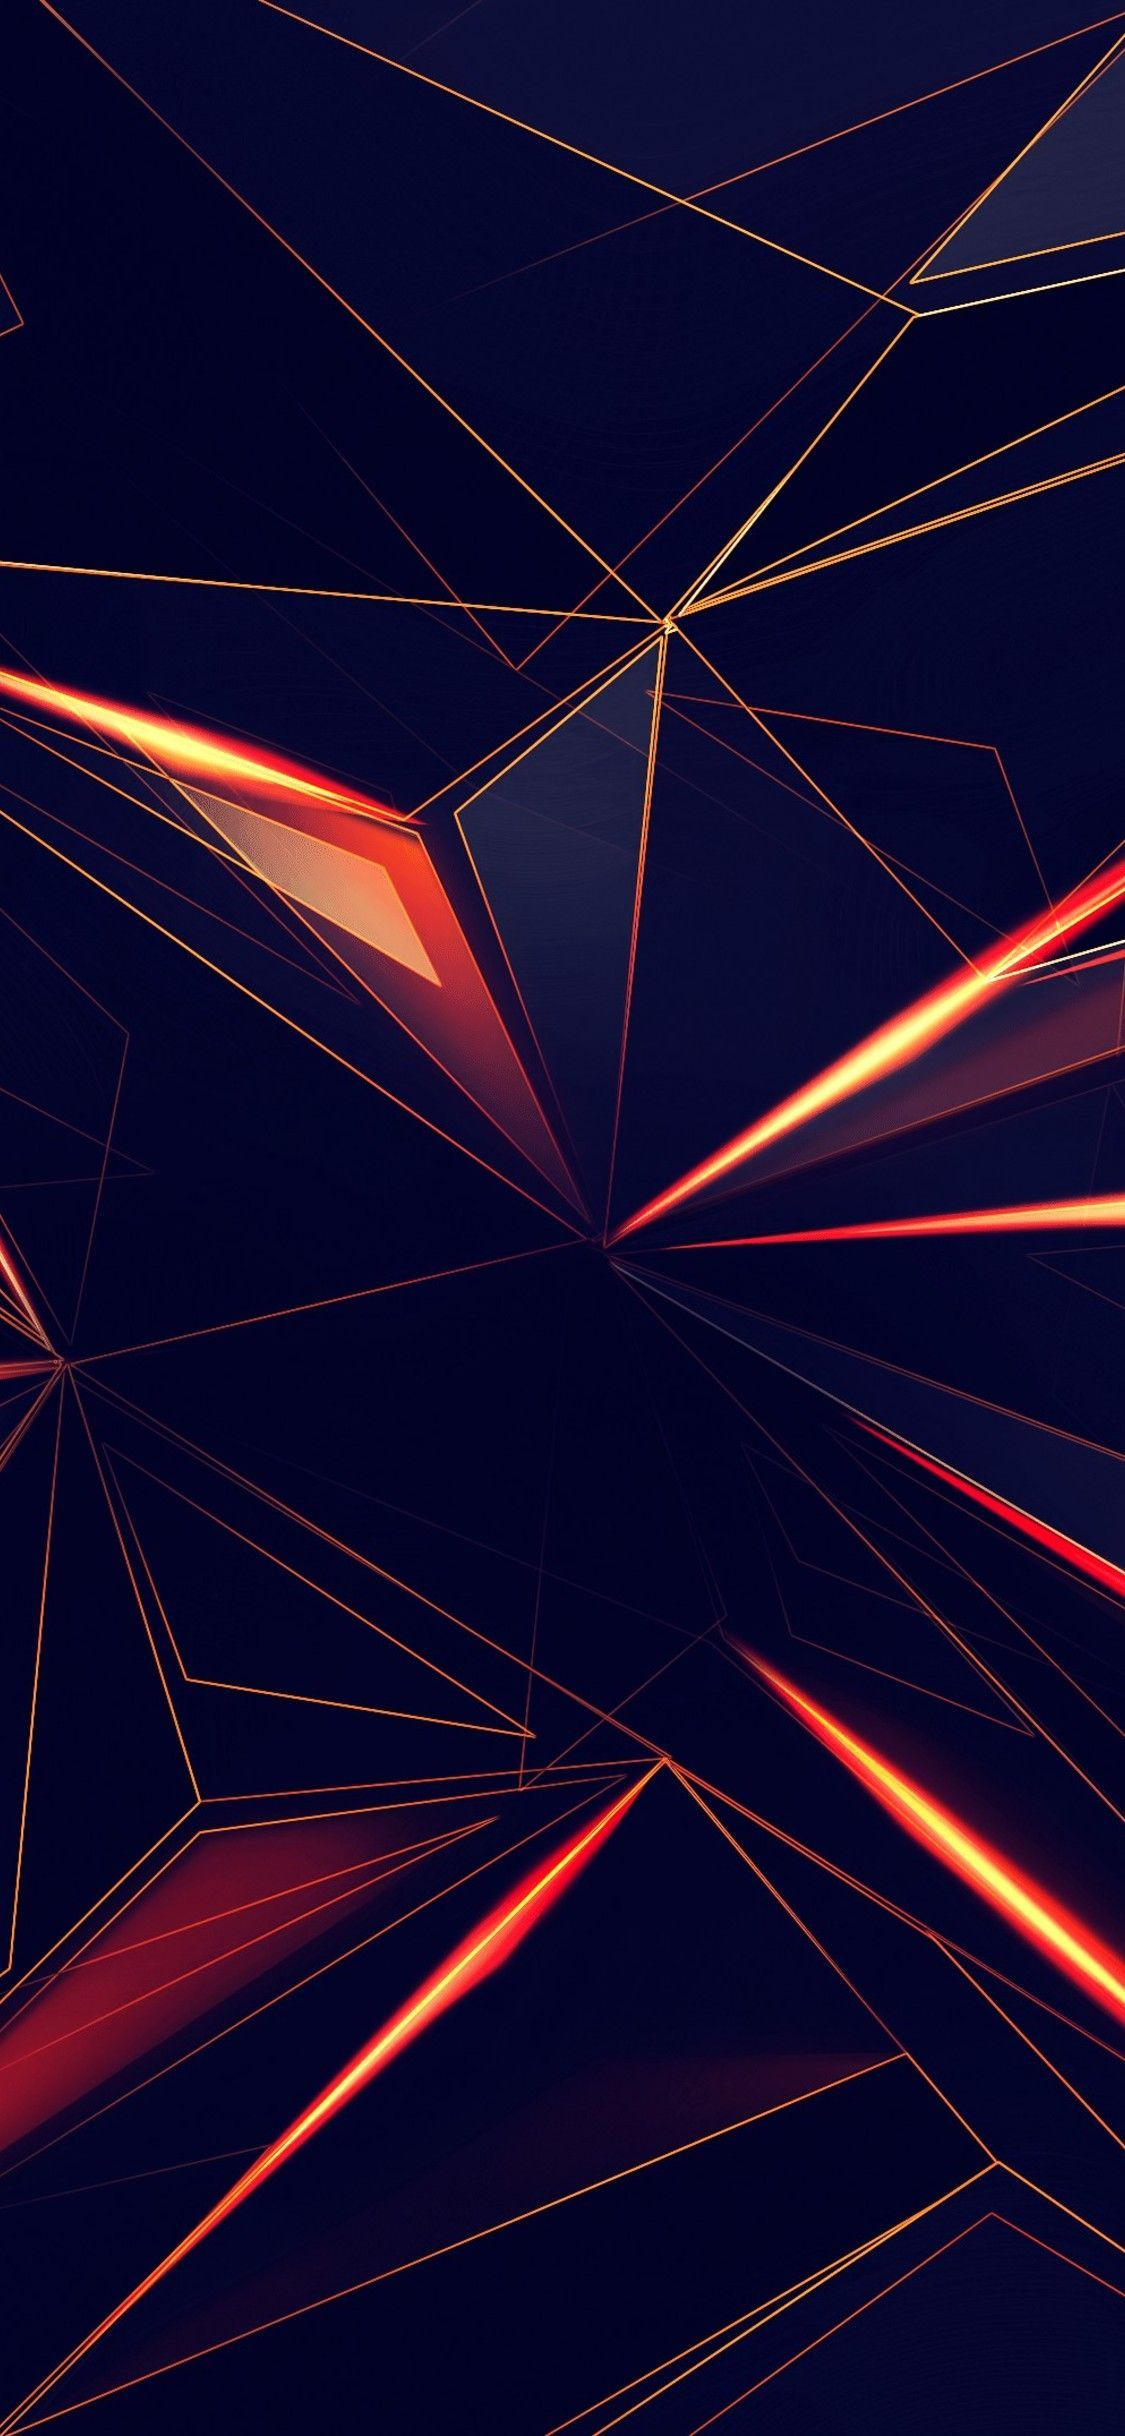 Abstract 4k Phone Wallpapers Top Free Abstract 4k Phone